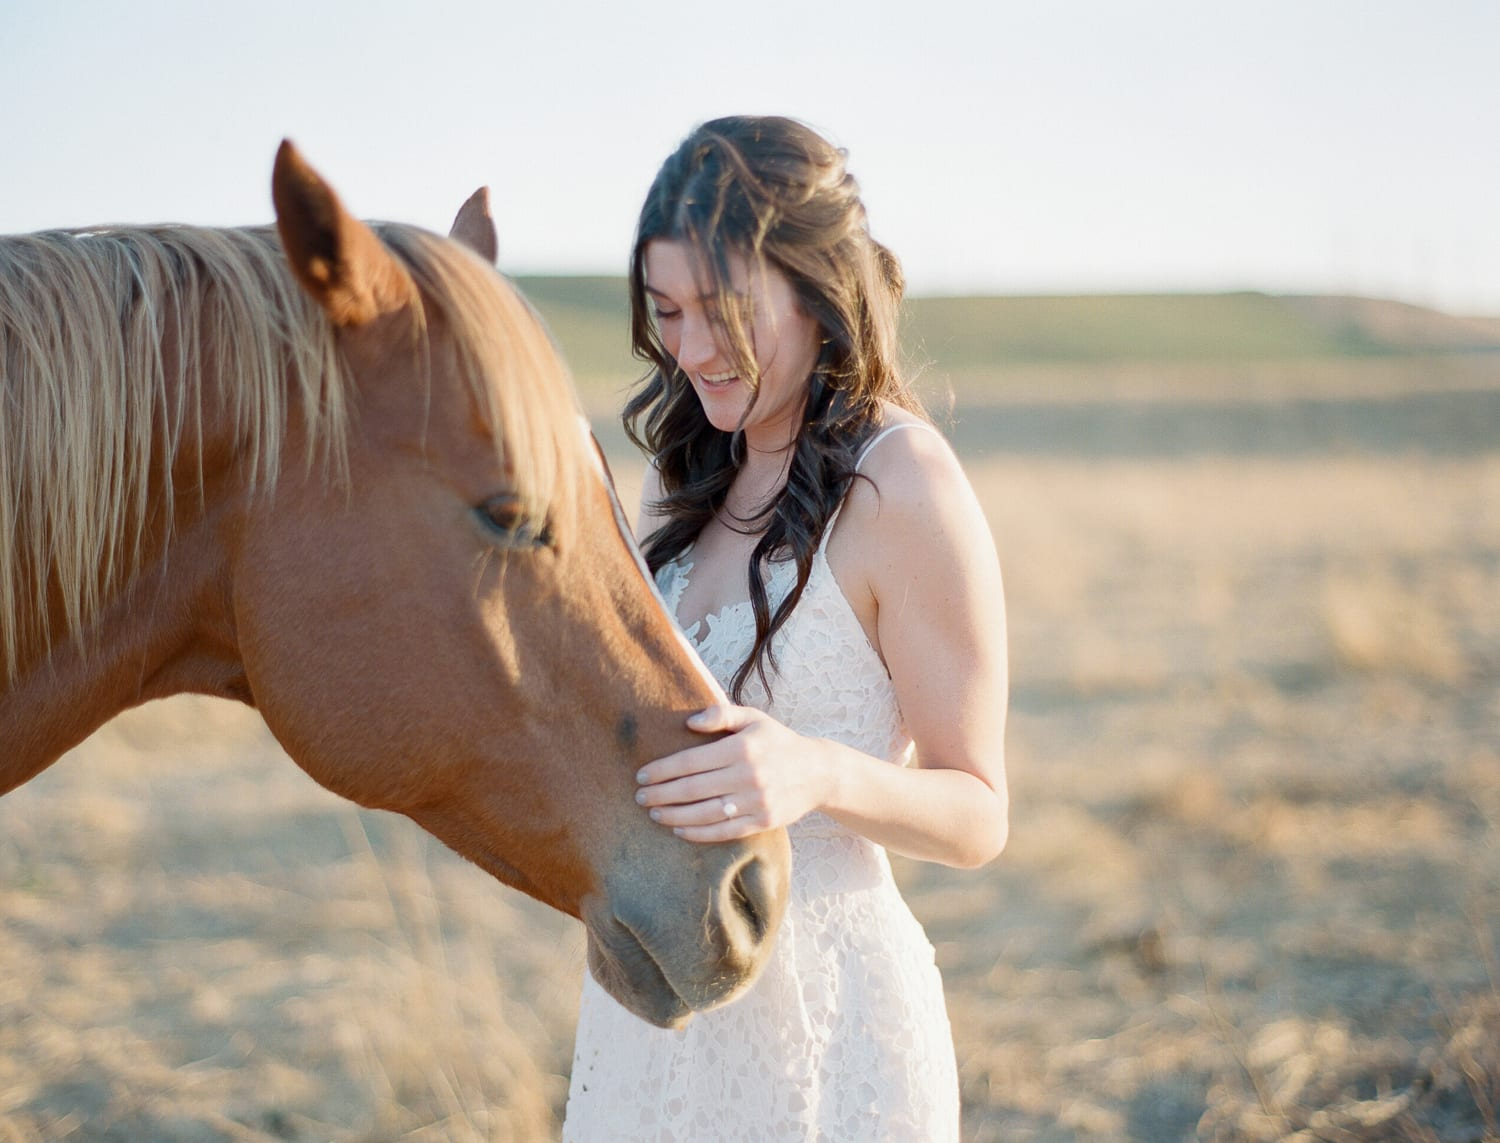 Niki with her horses for an engagement session at Wente